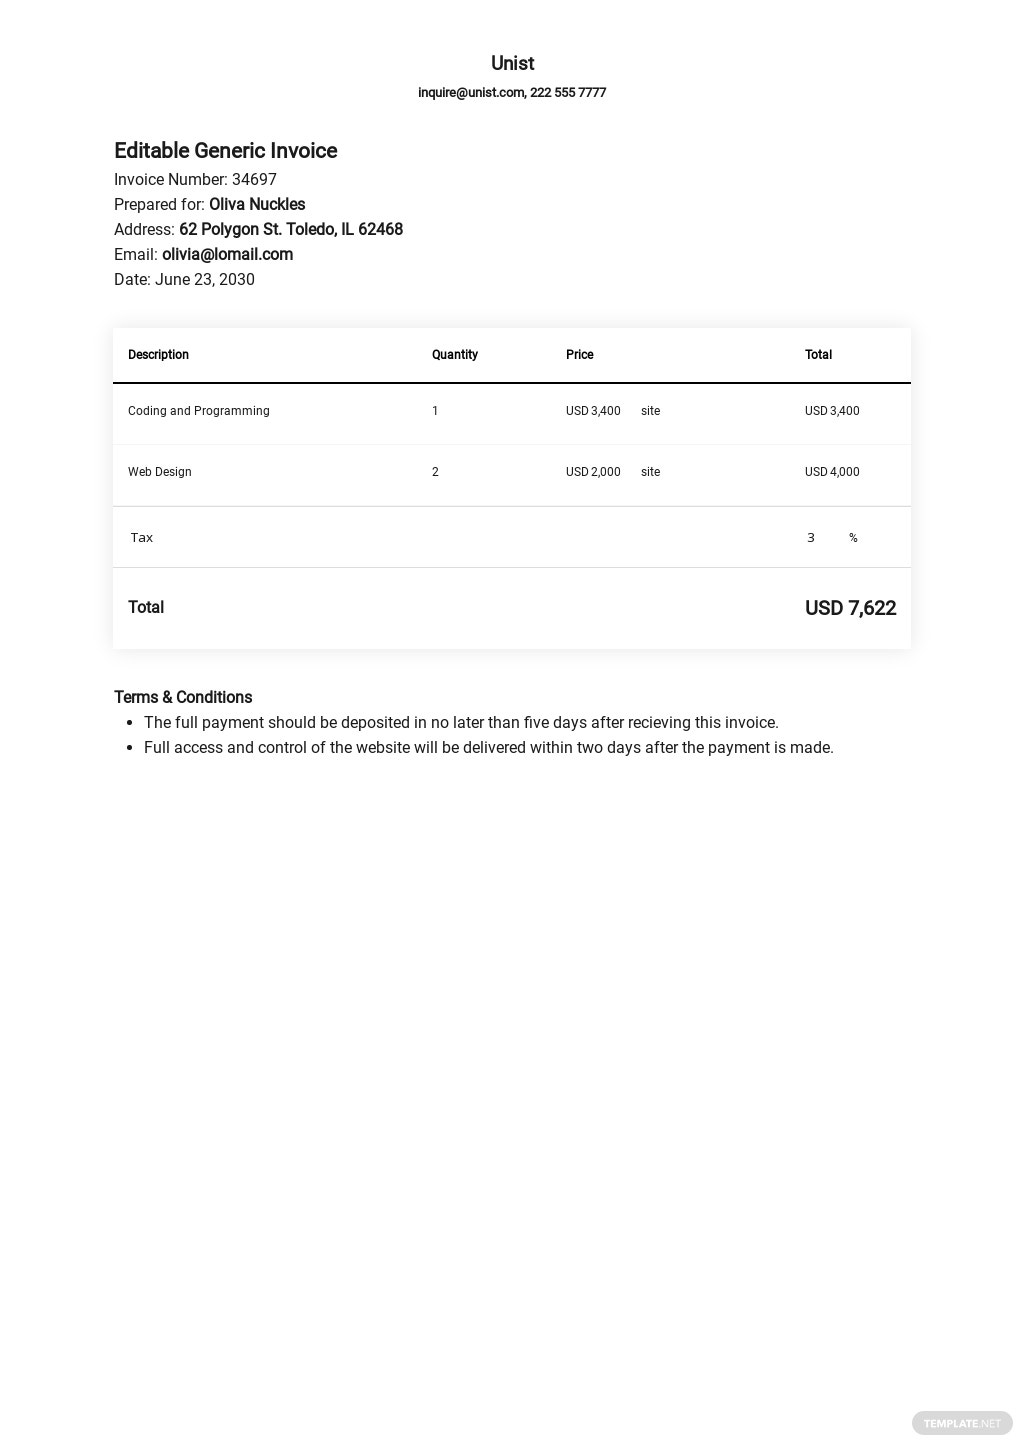 Editable Generic Invoice Template